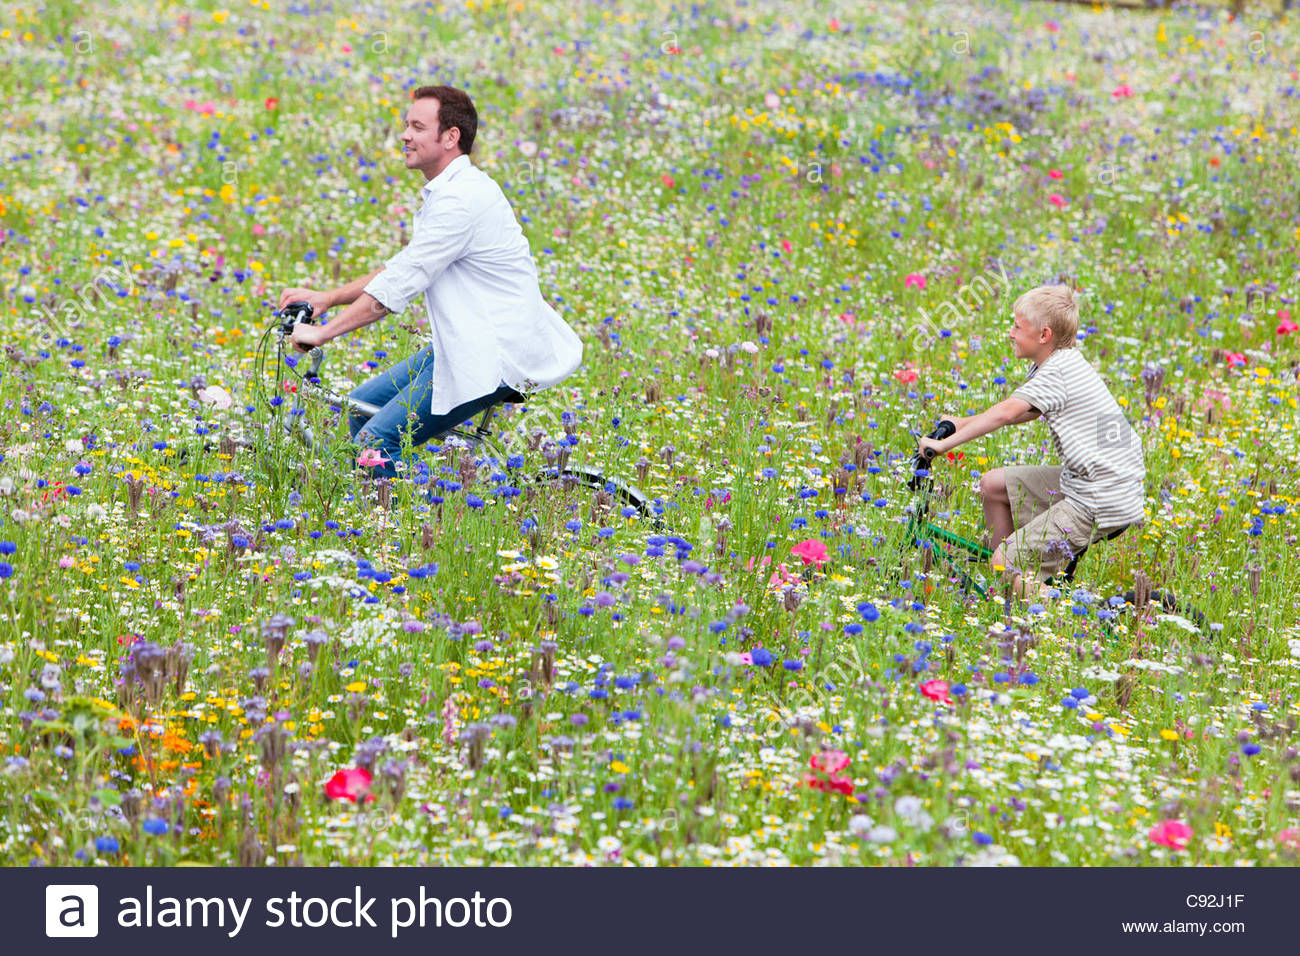 Father and son riding bicycles in wildflower field - Stock Image